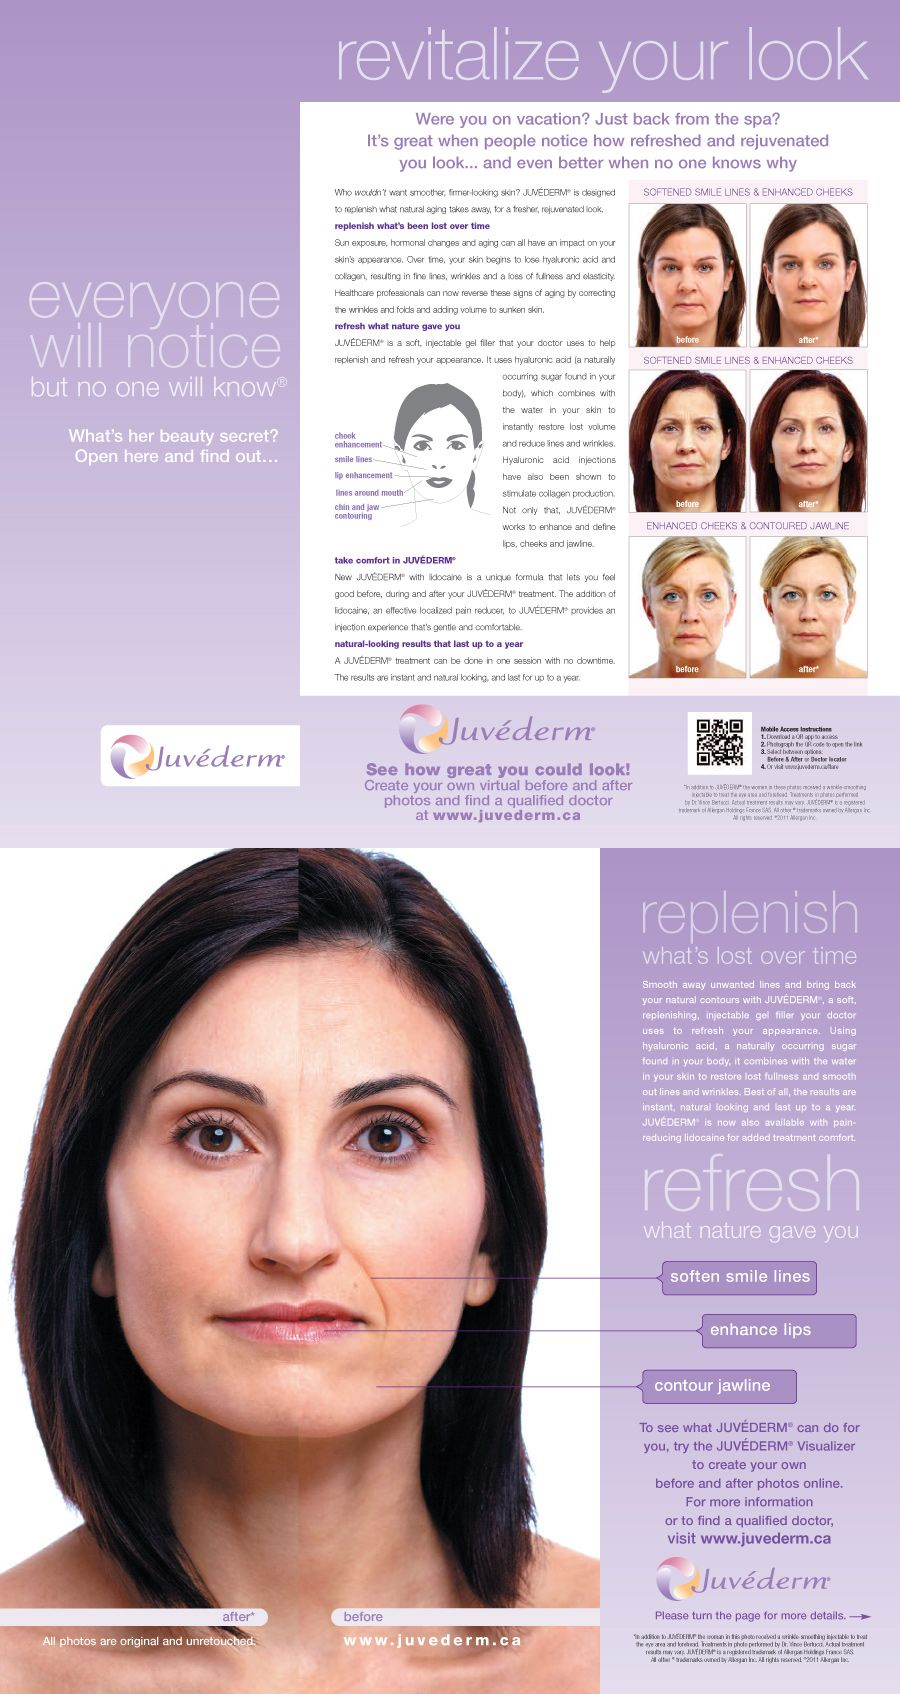 Juvederm Can Be Injected Under The Wrinkle To Plump And Fill It Creating Smooth Skin It Actually Looks Like Dermal Fillers Face Fillers Plastic Surgery Facts